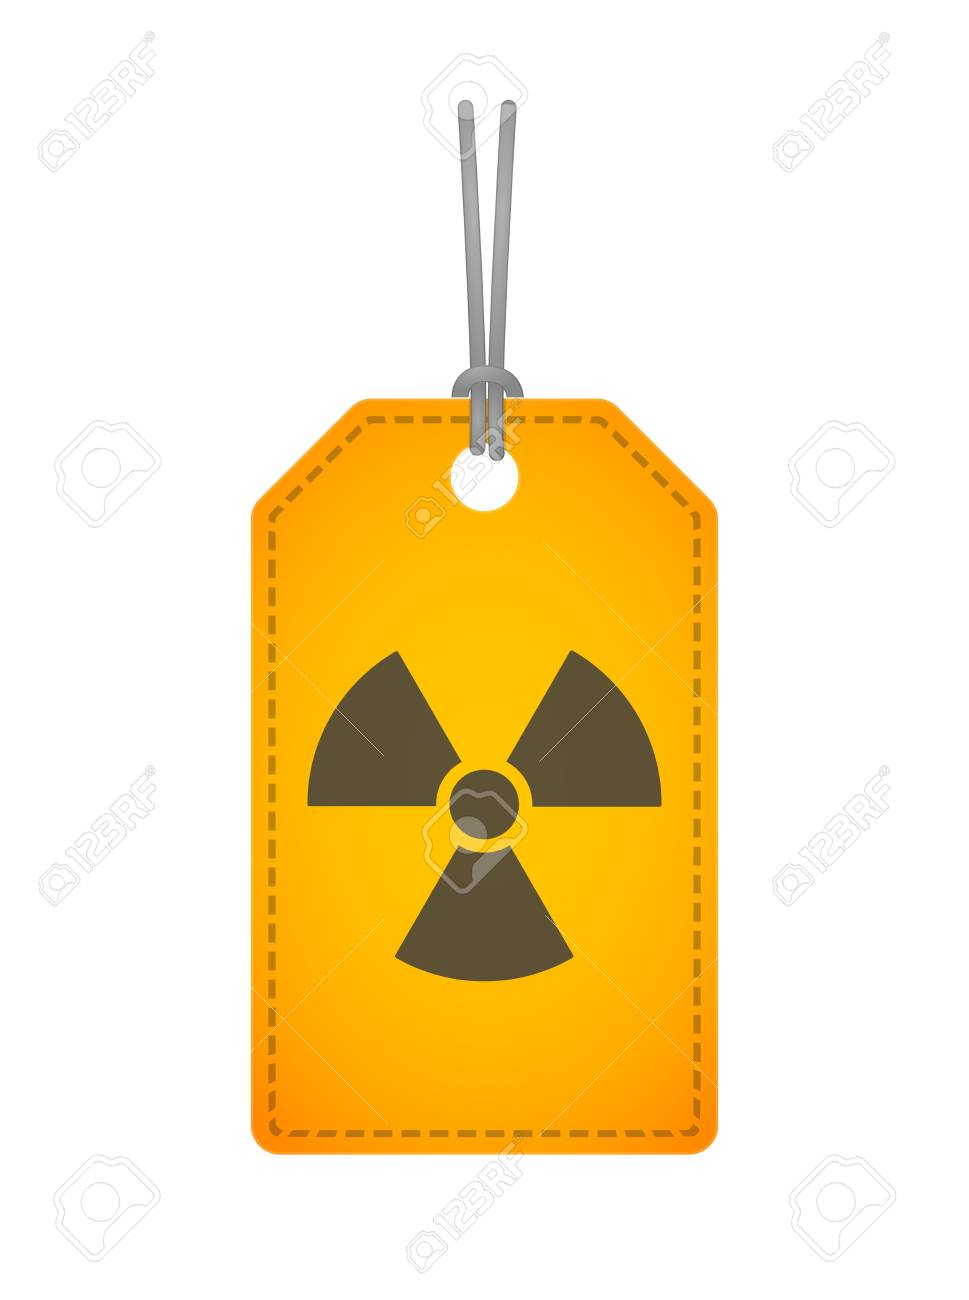 Illustration of an isolated label with an icon Stock Vector - 28900745